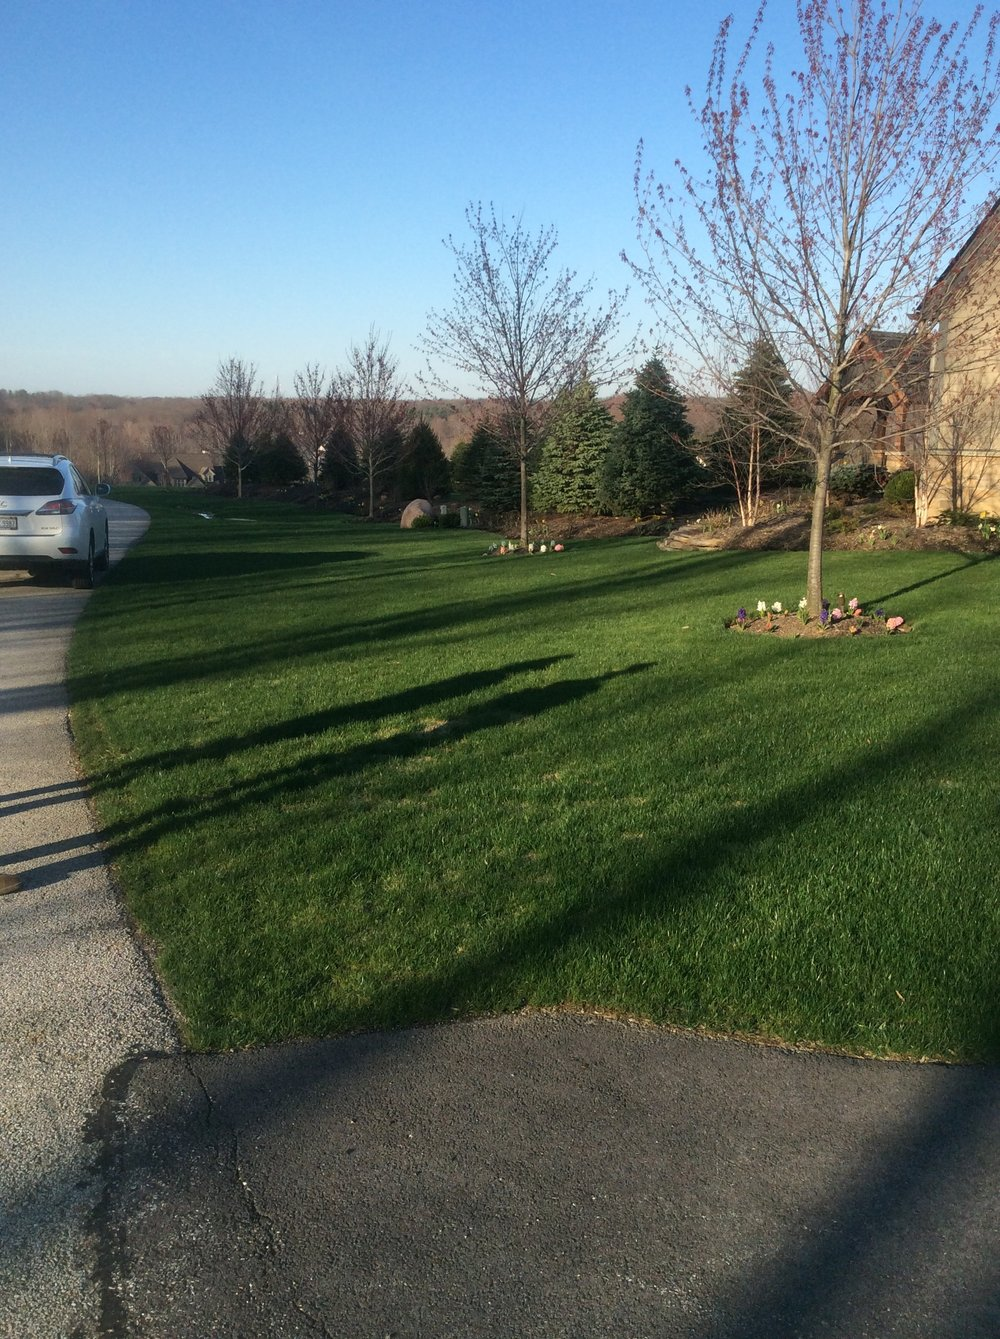 Quality lawn care in Bainbridge Township OH